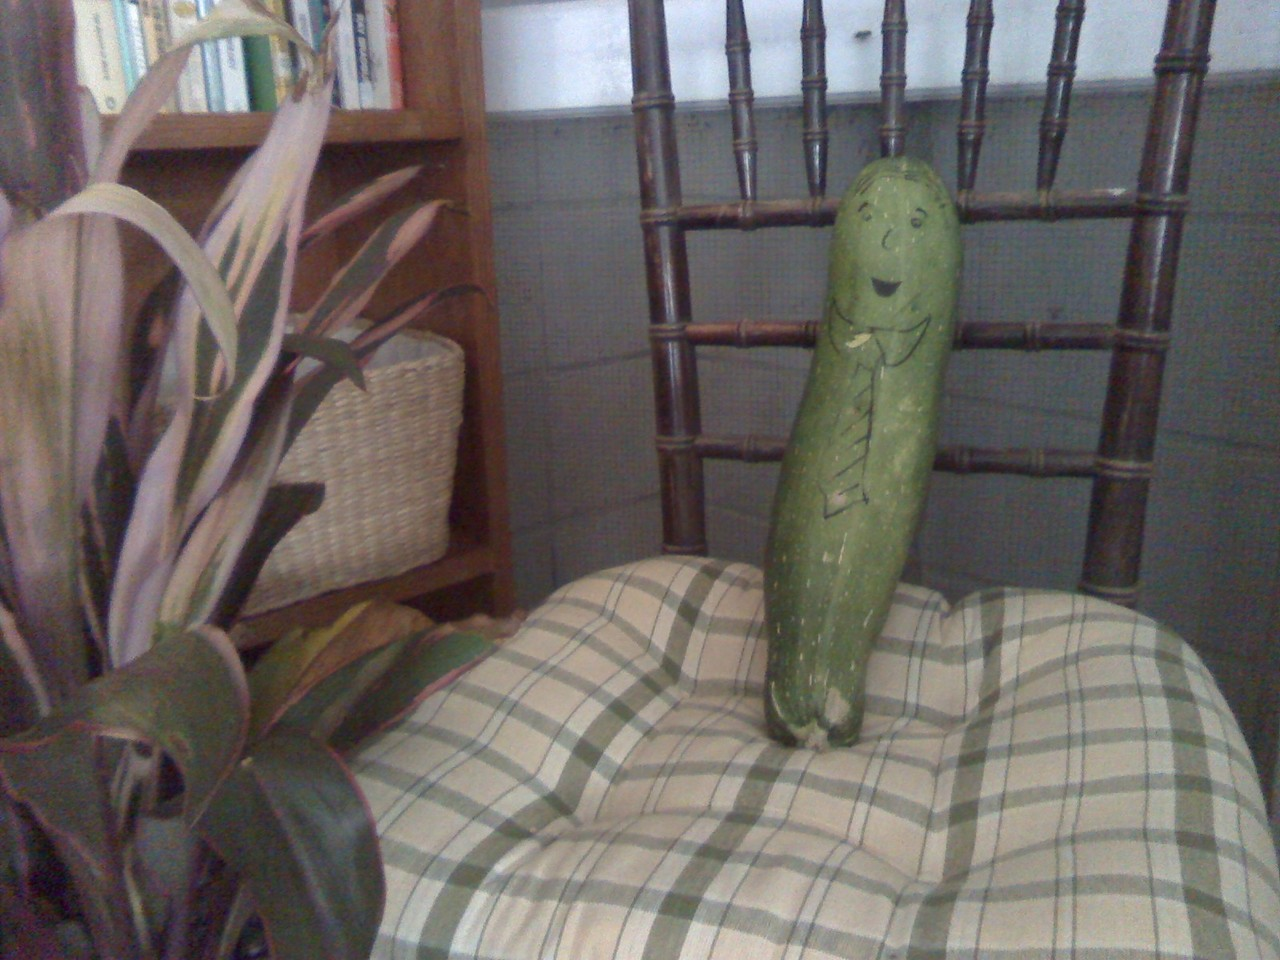 On Friday, during my 7th period study hall, I finally got them all quiet and working.  Then, Robby bursts through the door wielding…a GIANT ZUCHINNI! So we put a face on him and showed him around.  Out the window, to other classes…etc. Robby took him home over the weekend, but Mr. Z came back to sit in my reading corner this morning. This is what it means to be a teacher.